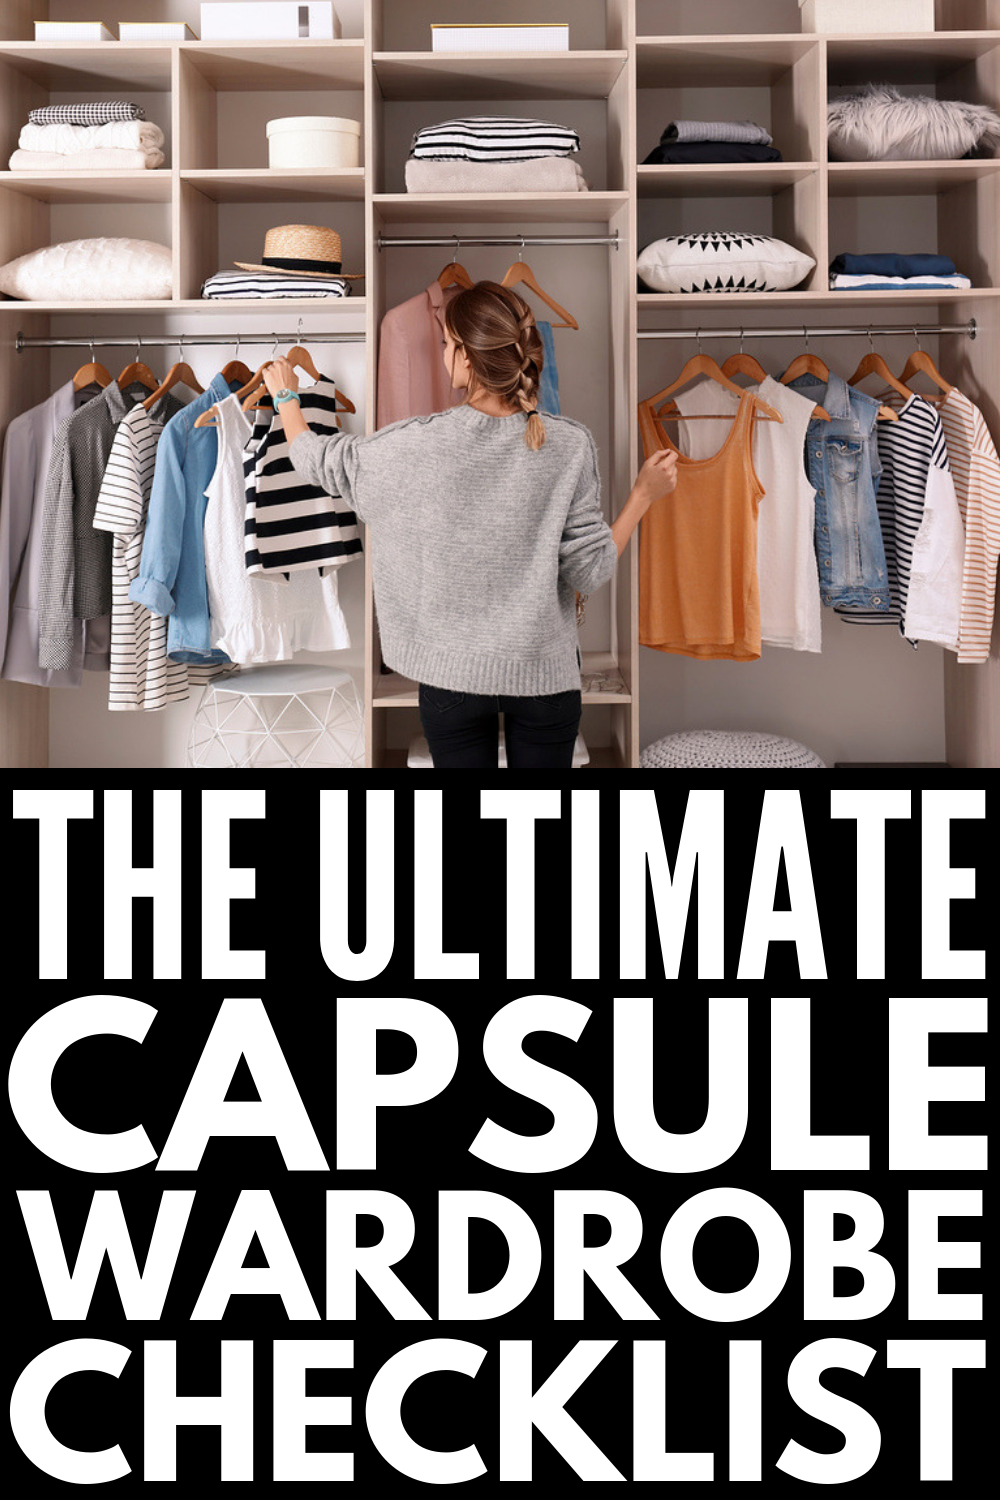 The Ultimate Capsule Wardrobe Checklist | If you want to know how to build a